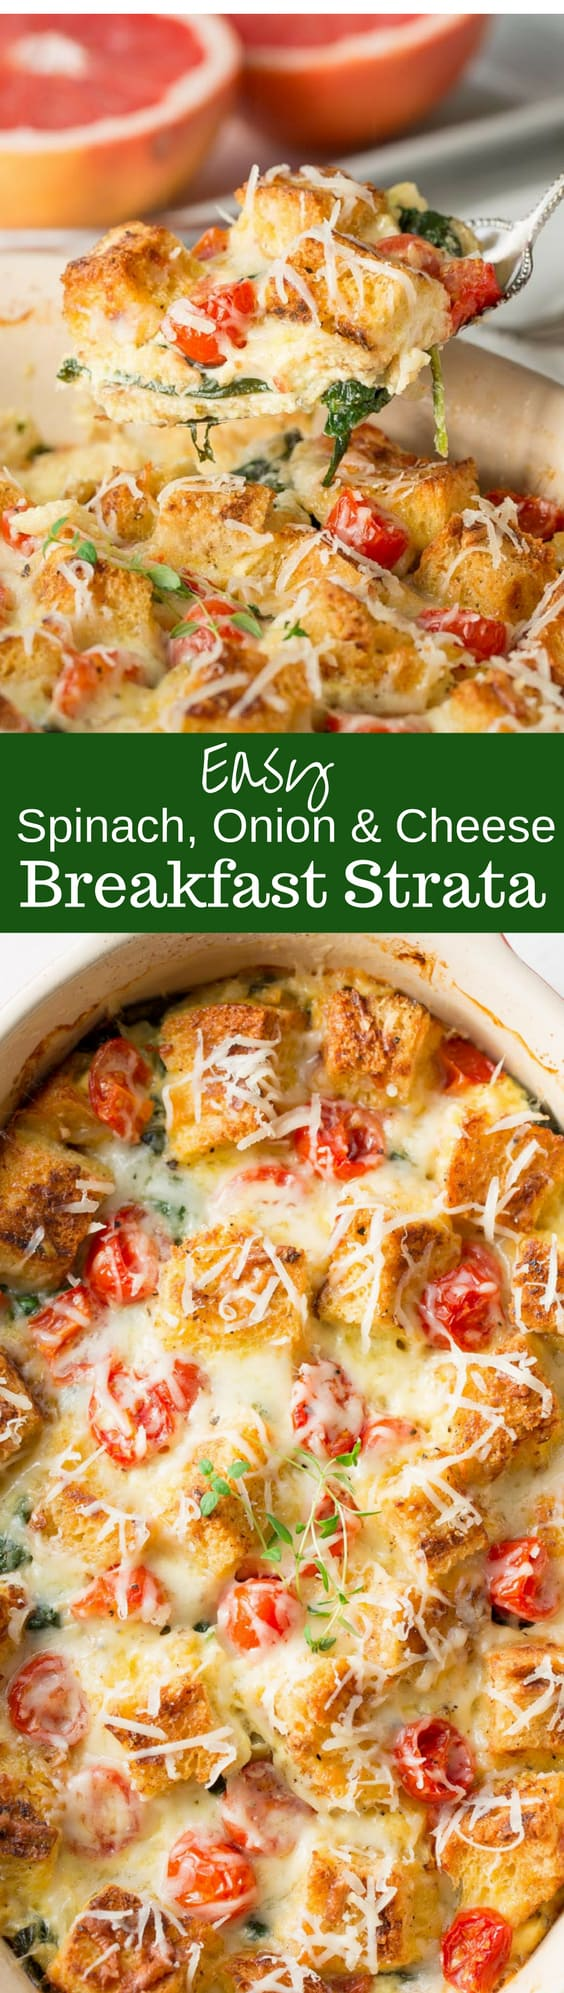 Easy Spinach, Onion & Cheese Breakfast Strata - a wonderful make ahead breakfast casserole with tons of flavor and rich Gruyere cheese.  Add bacon or sausage for your hungry family!  www.savingdessert.com